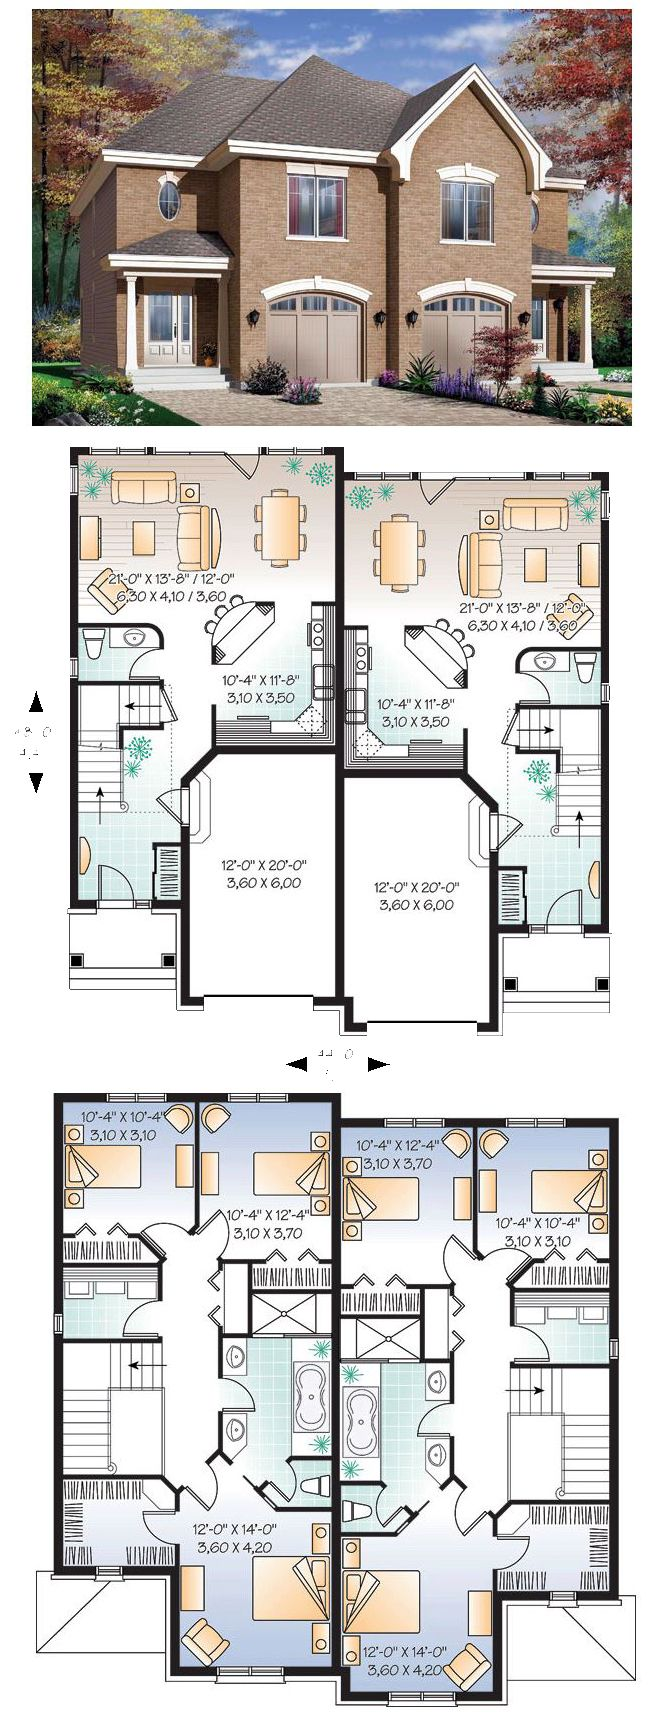 Best 25 duplex house plans ideas on pinterest duplex for Duplex plans 3 bedroom